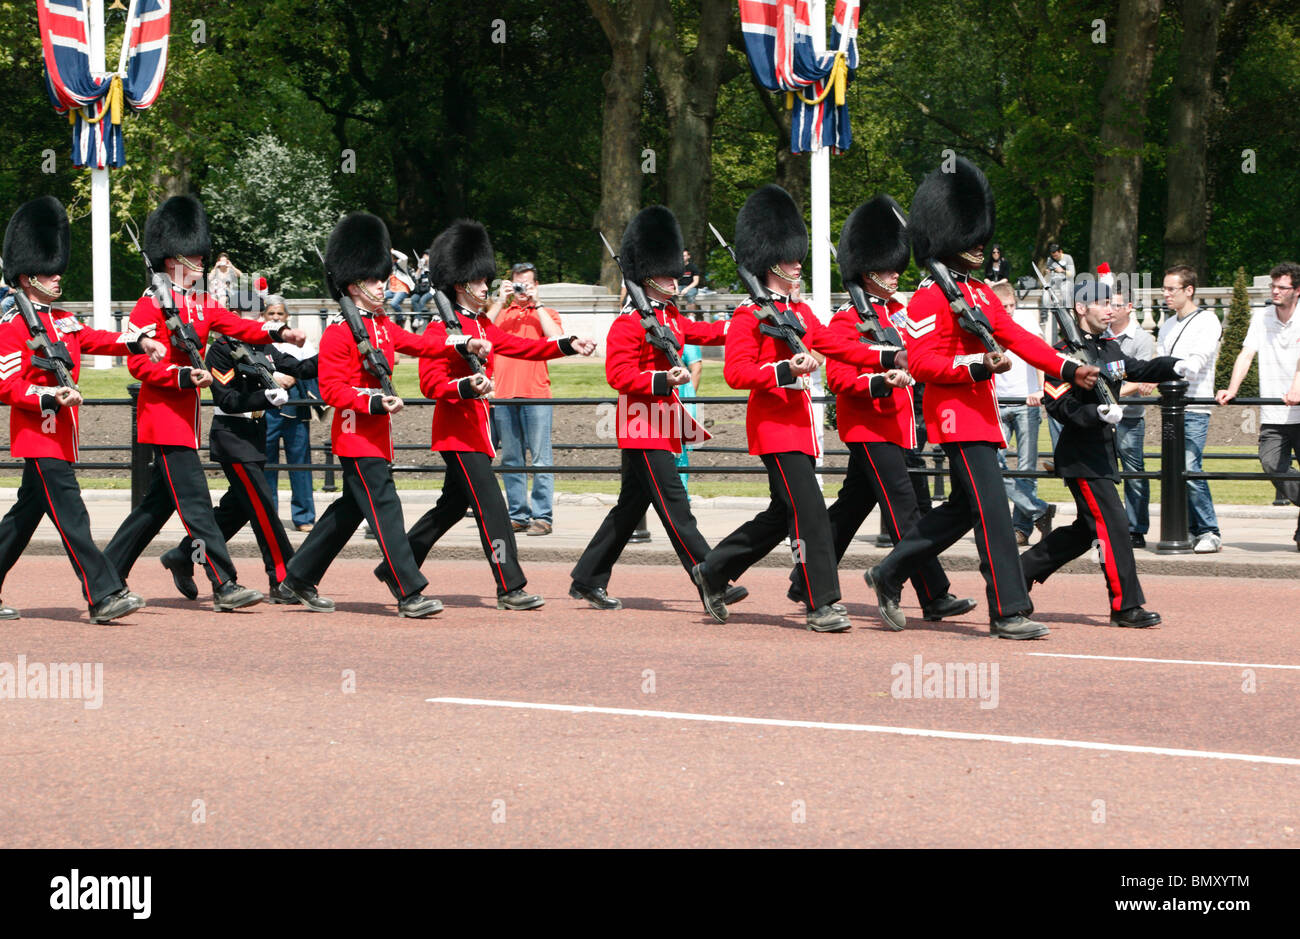 Guardsmen  participating in changing the guard, outside  Buckingham Palace, London - Stock Image